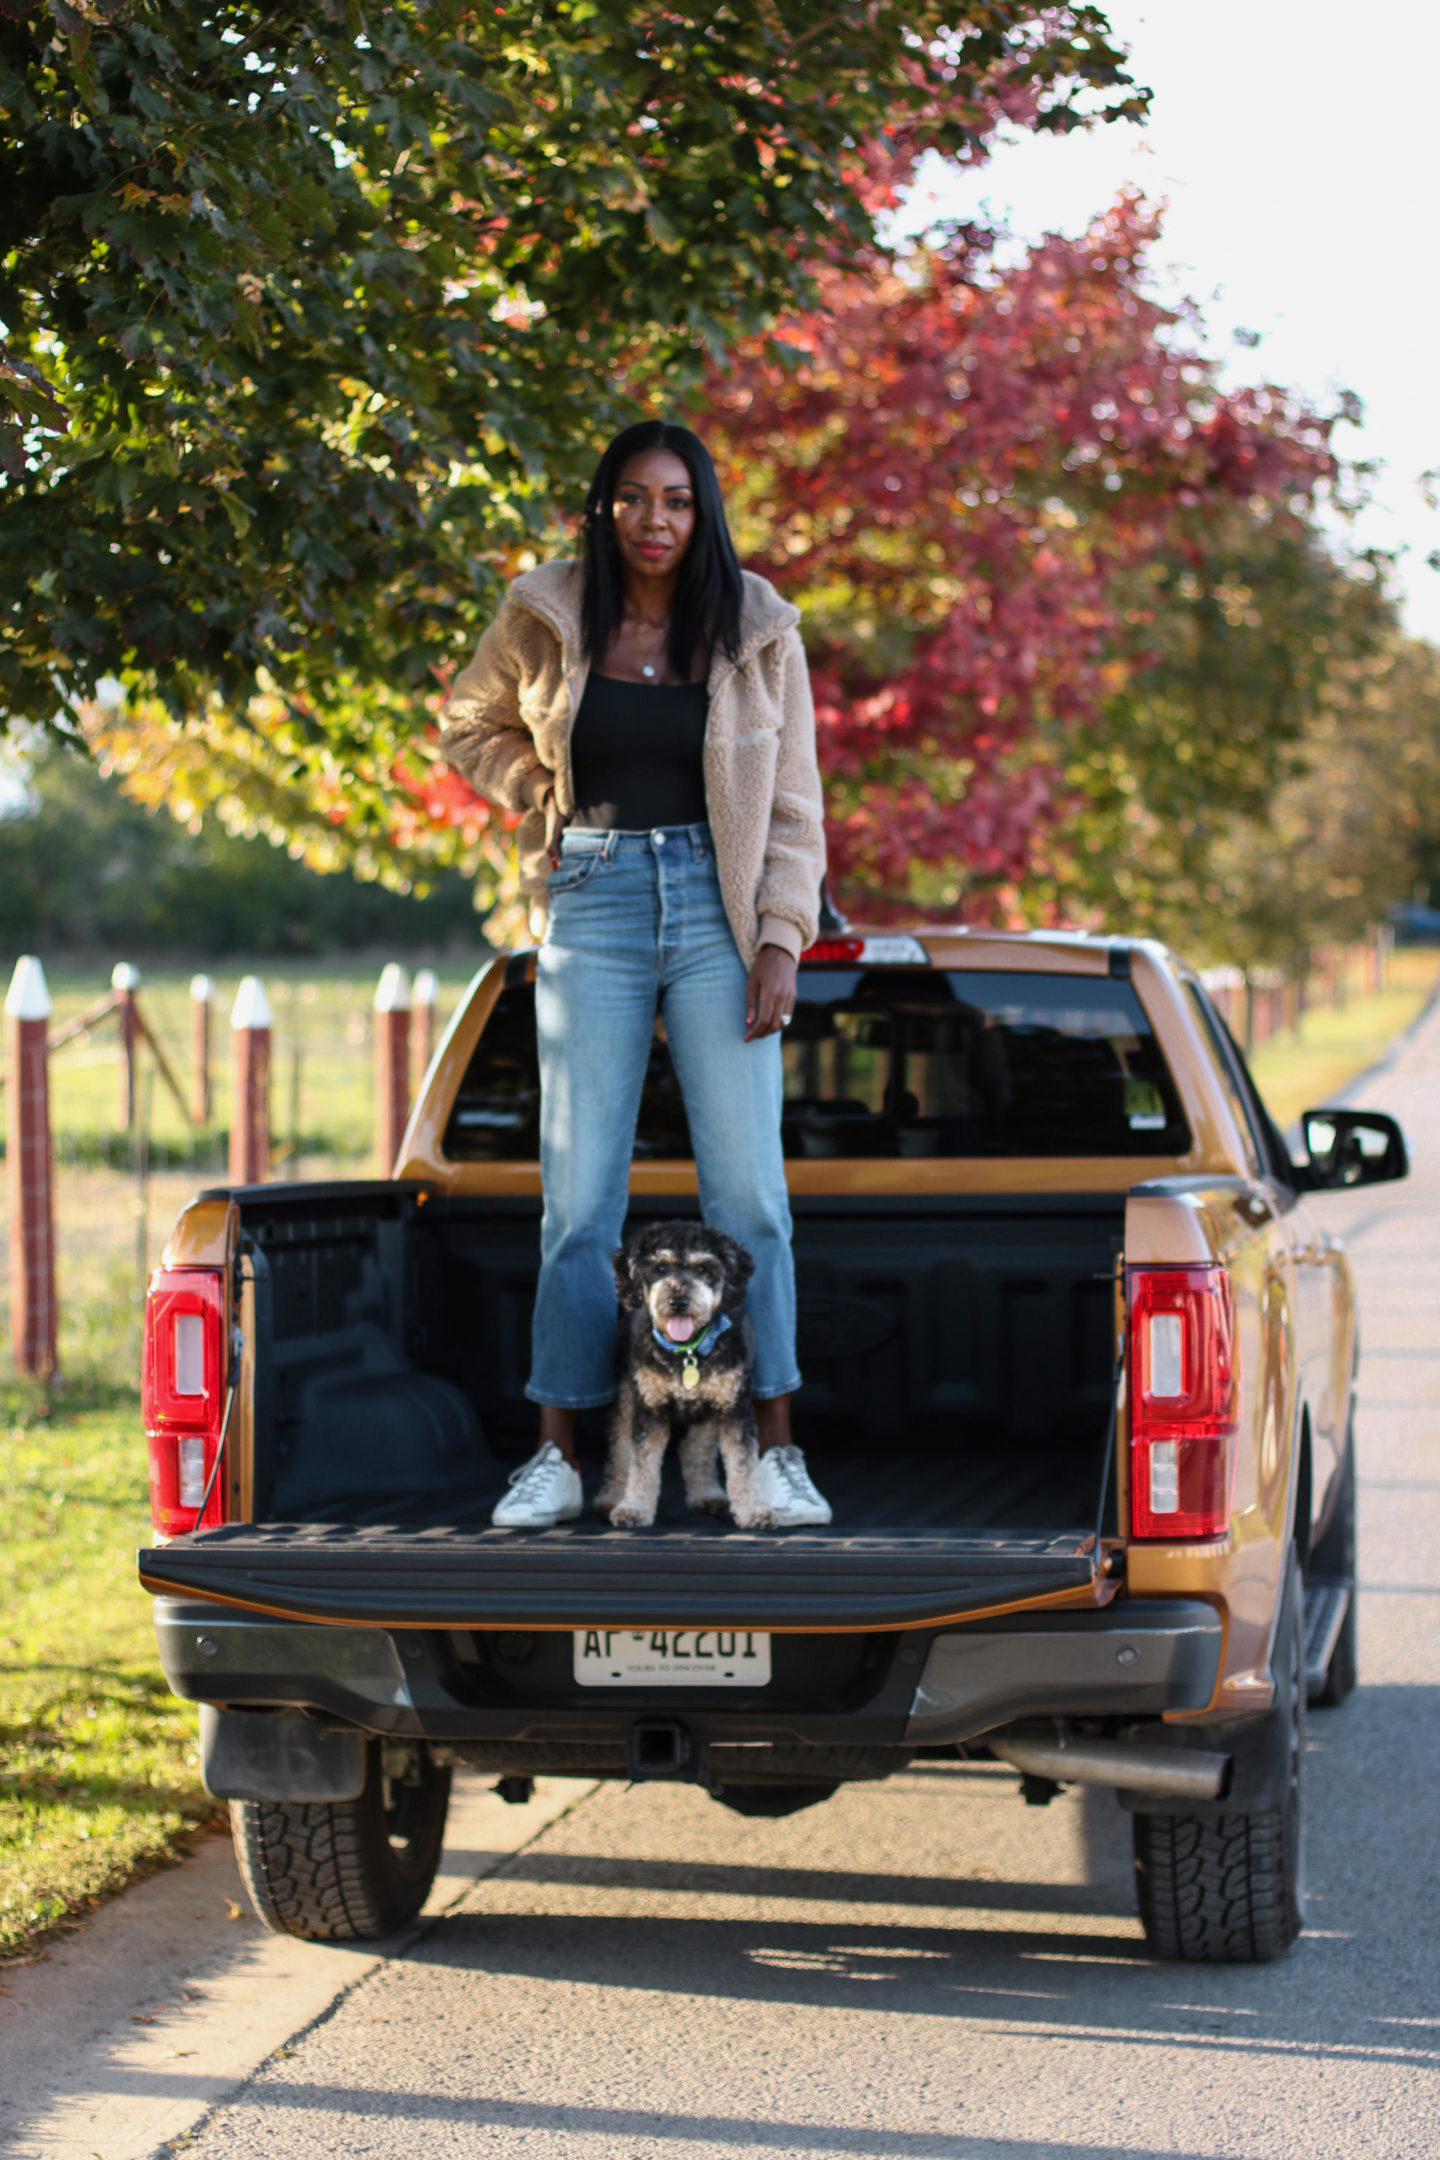 Dominique Baker standing in the cab of the Ford Ranger Lariat with her dog Reese